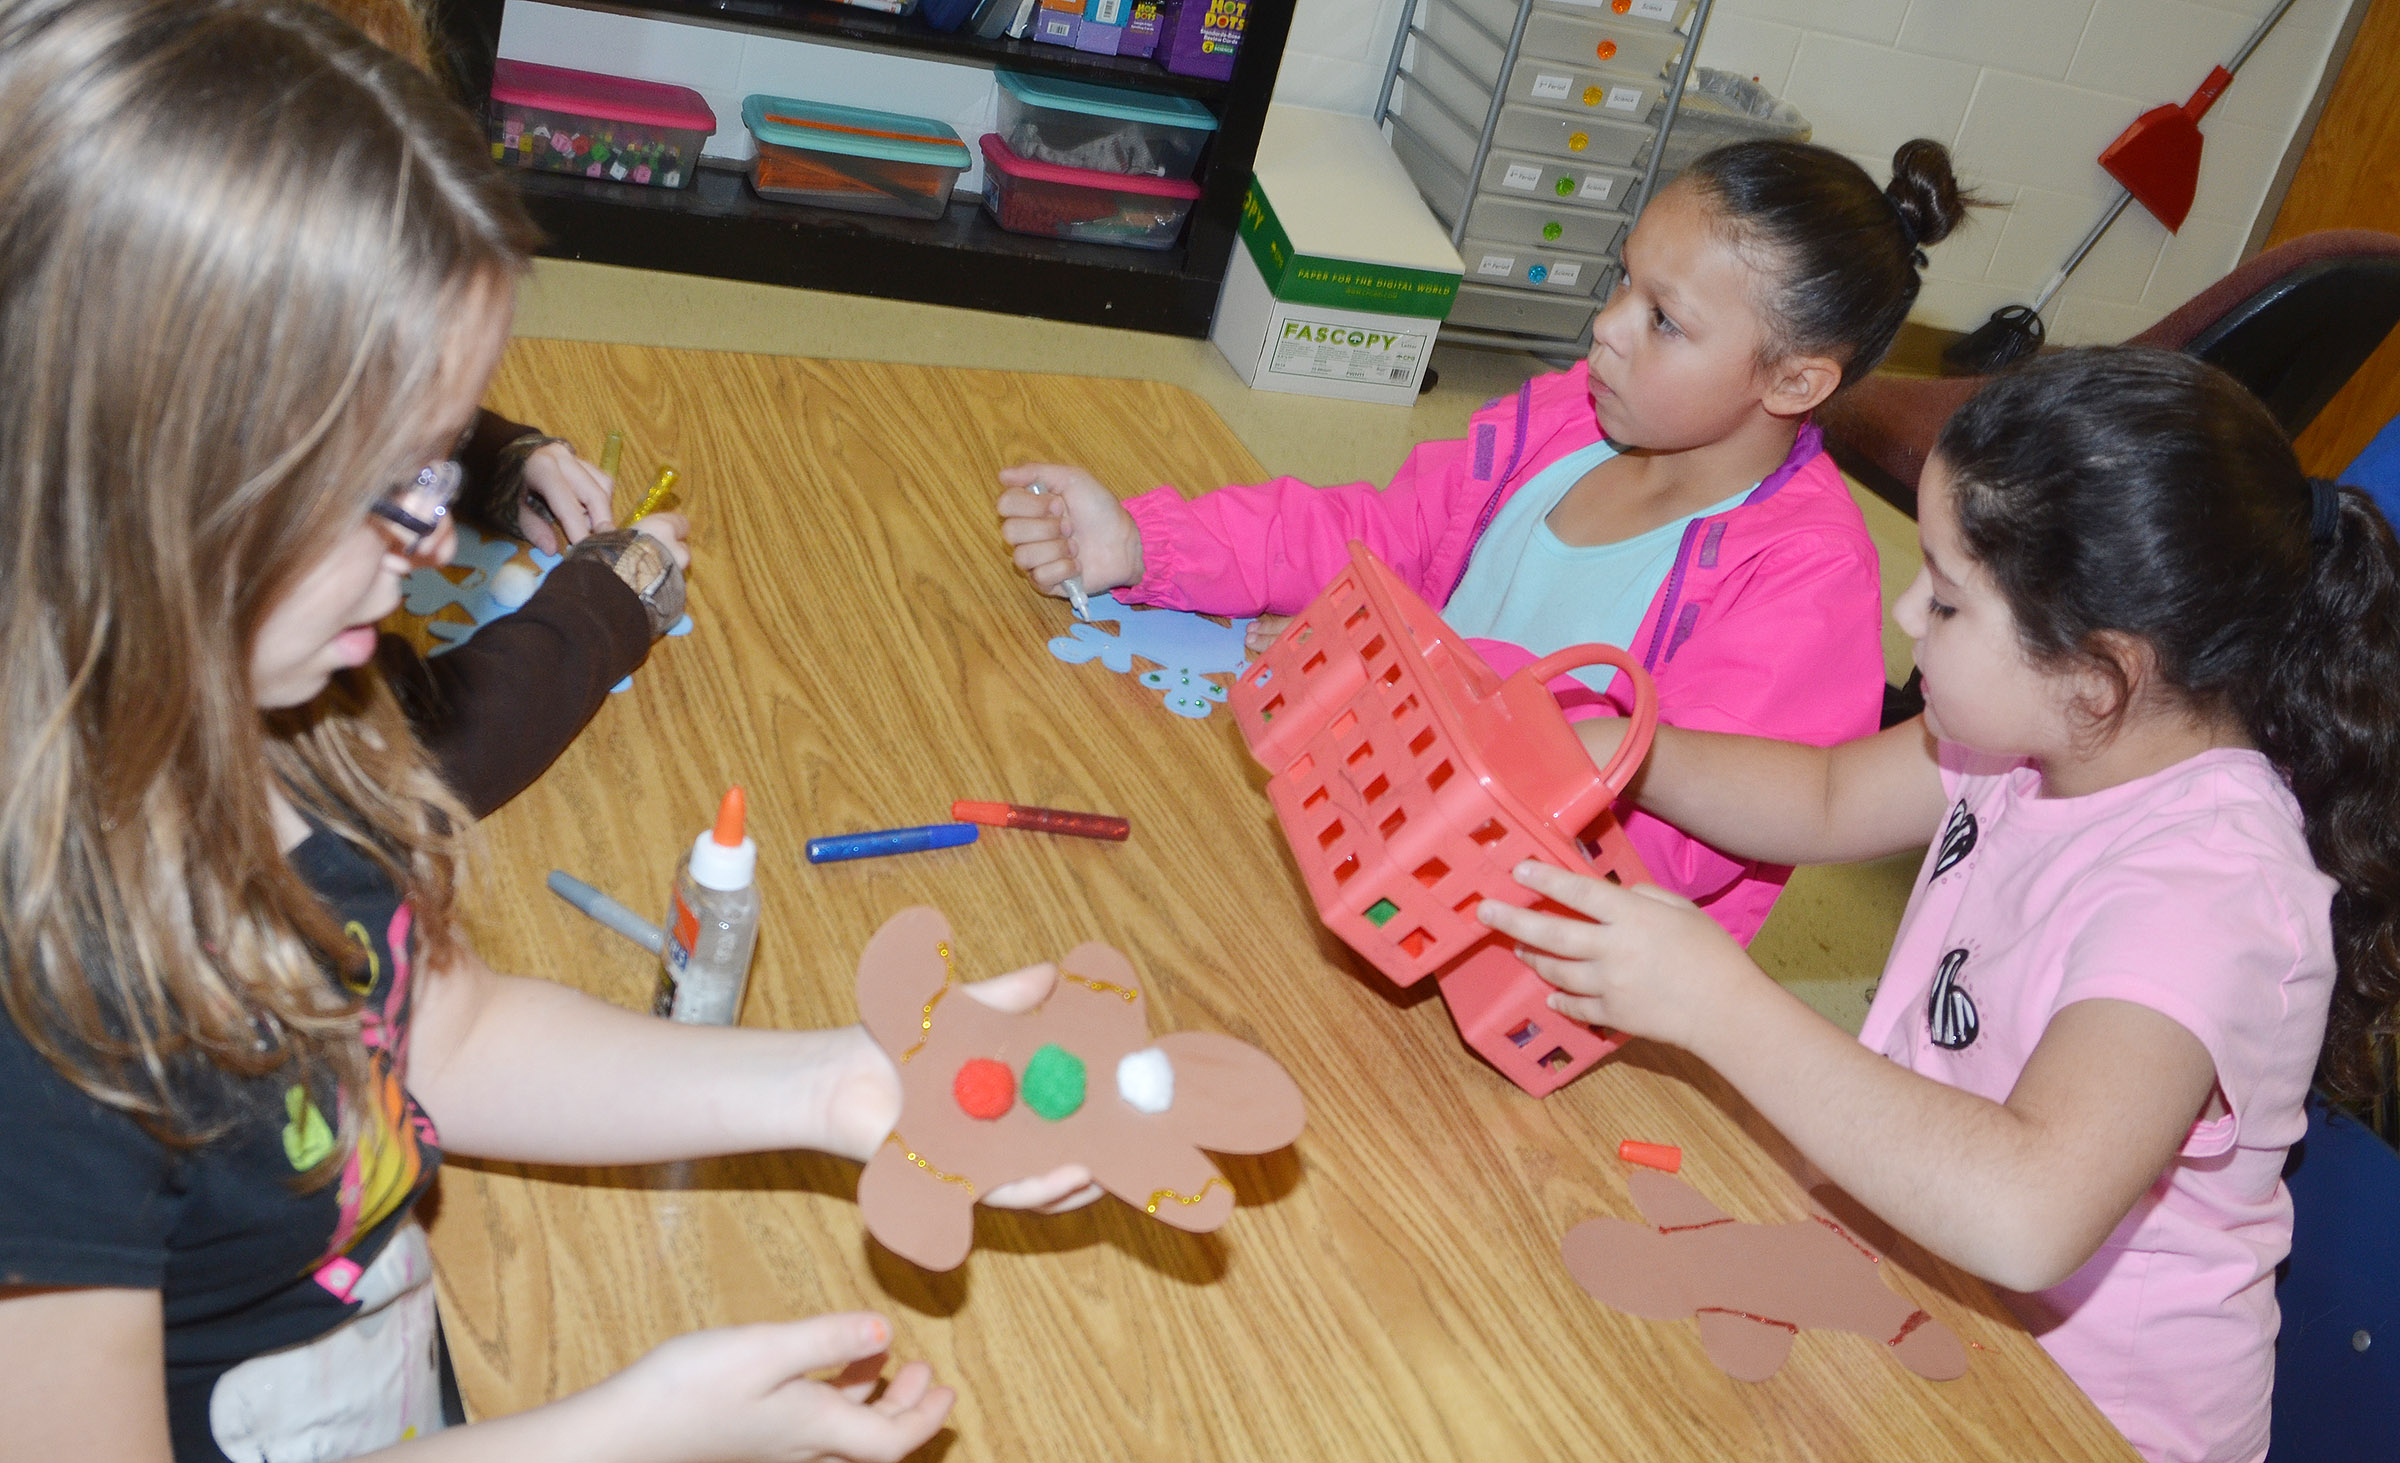 CES fourth-graders, from left, McKailynn Grubaugh, Breona Bridgewater and Brooklyn Boudreaux make gingerbread ornaments.